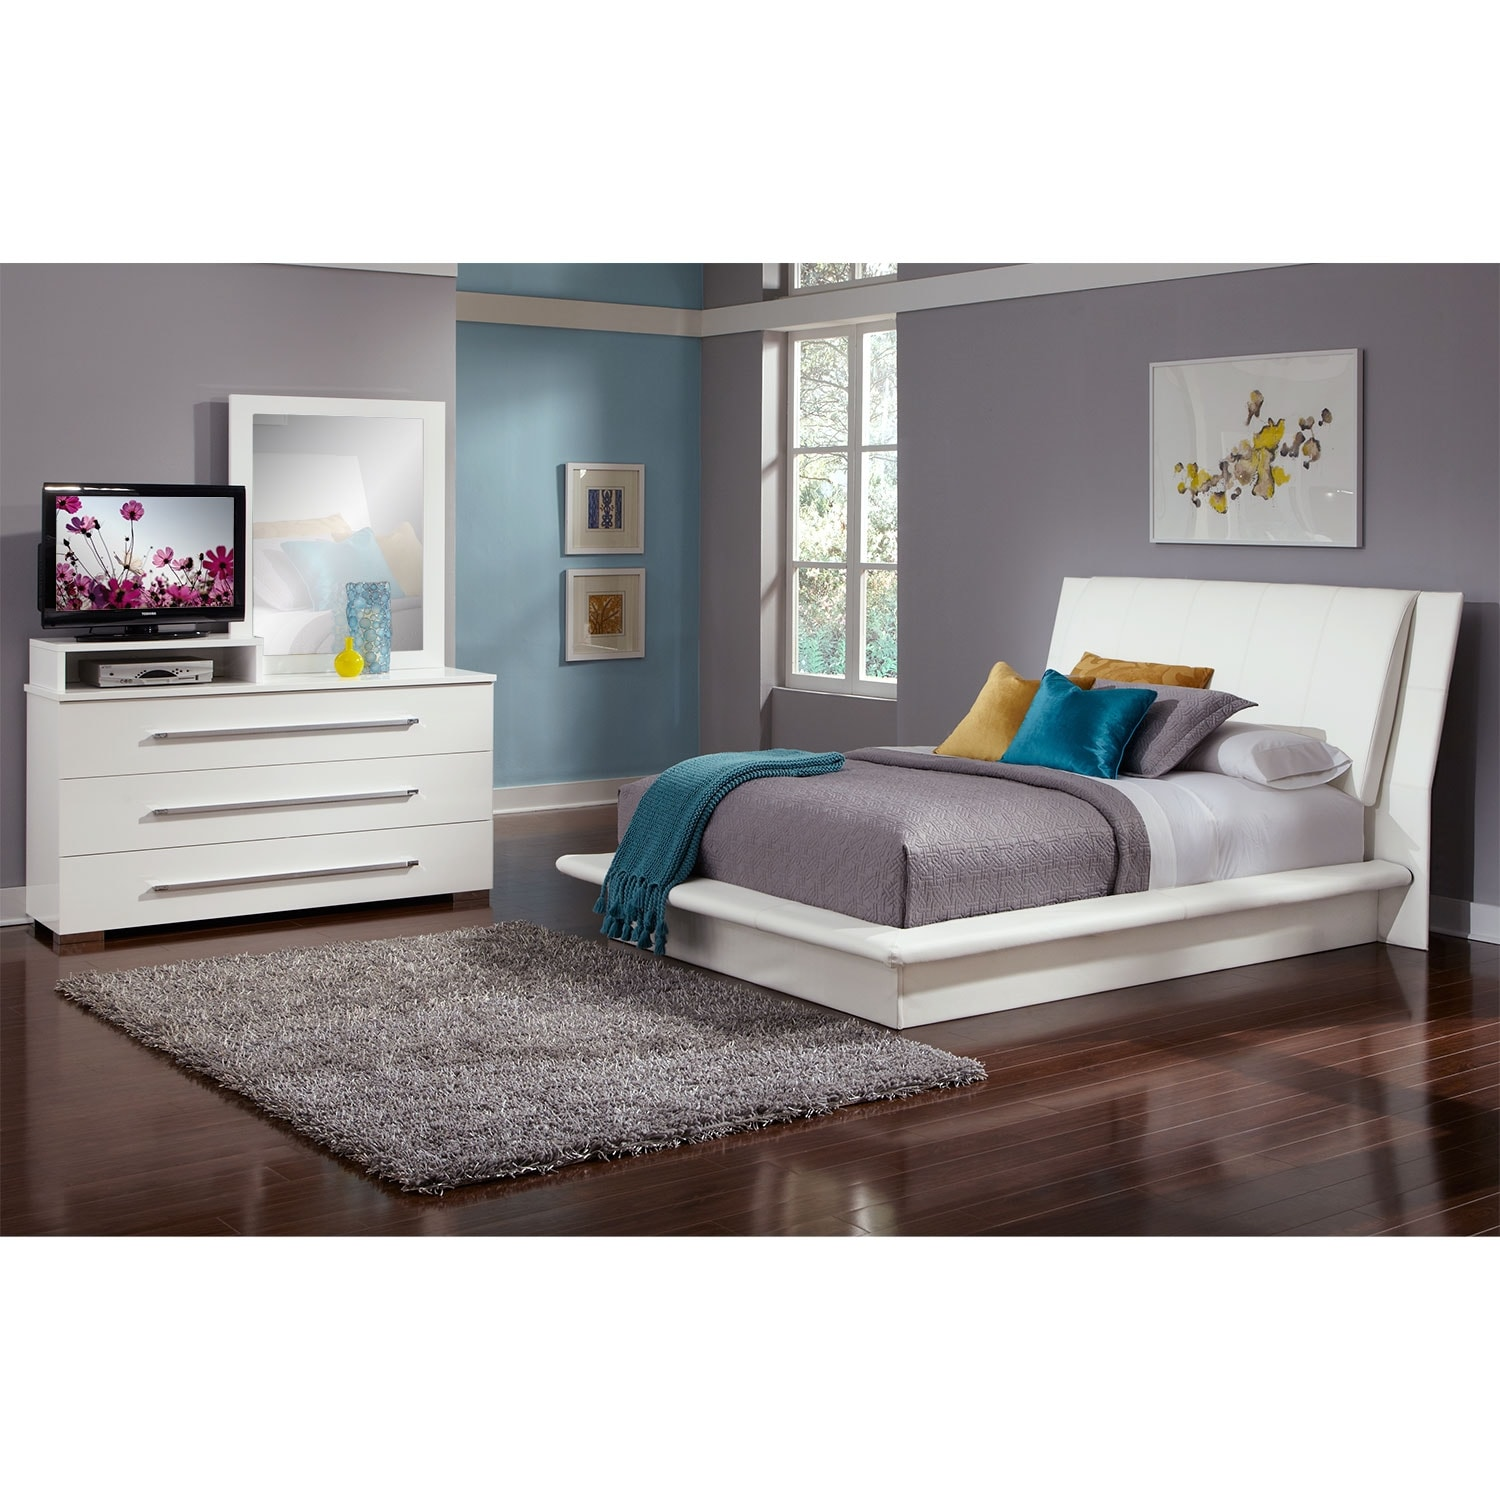 Dimora 5 Piece Queen Upholstered Bedroom Set With Media Dresser White Value City Furniture